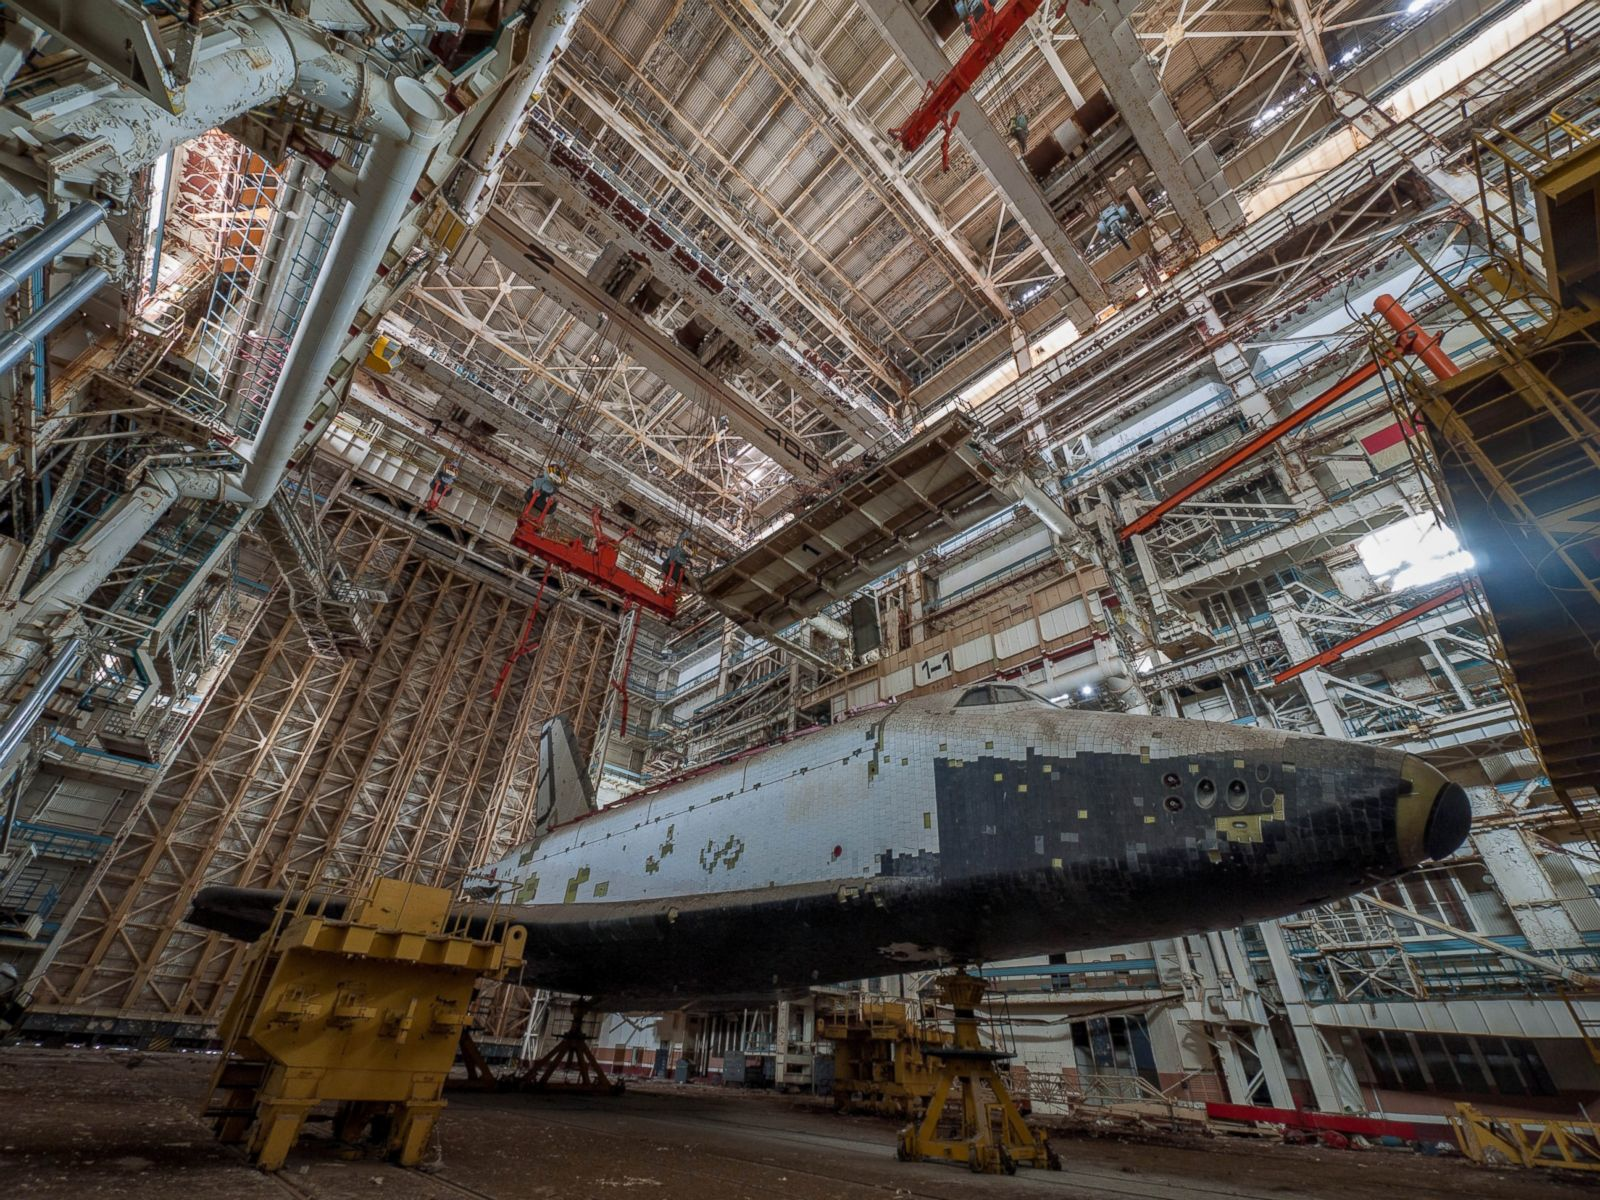 Captivating Photographs Document Soviet Space Shuttles Abandoned in ...